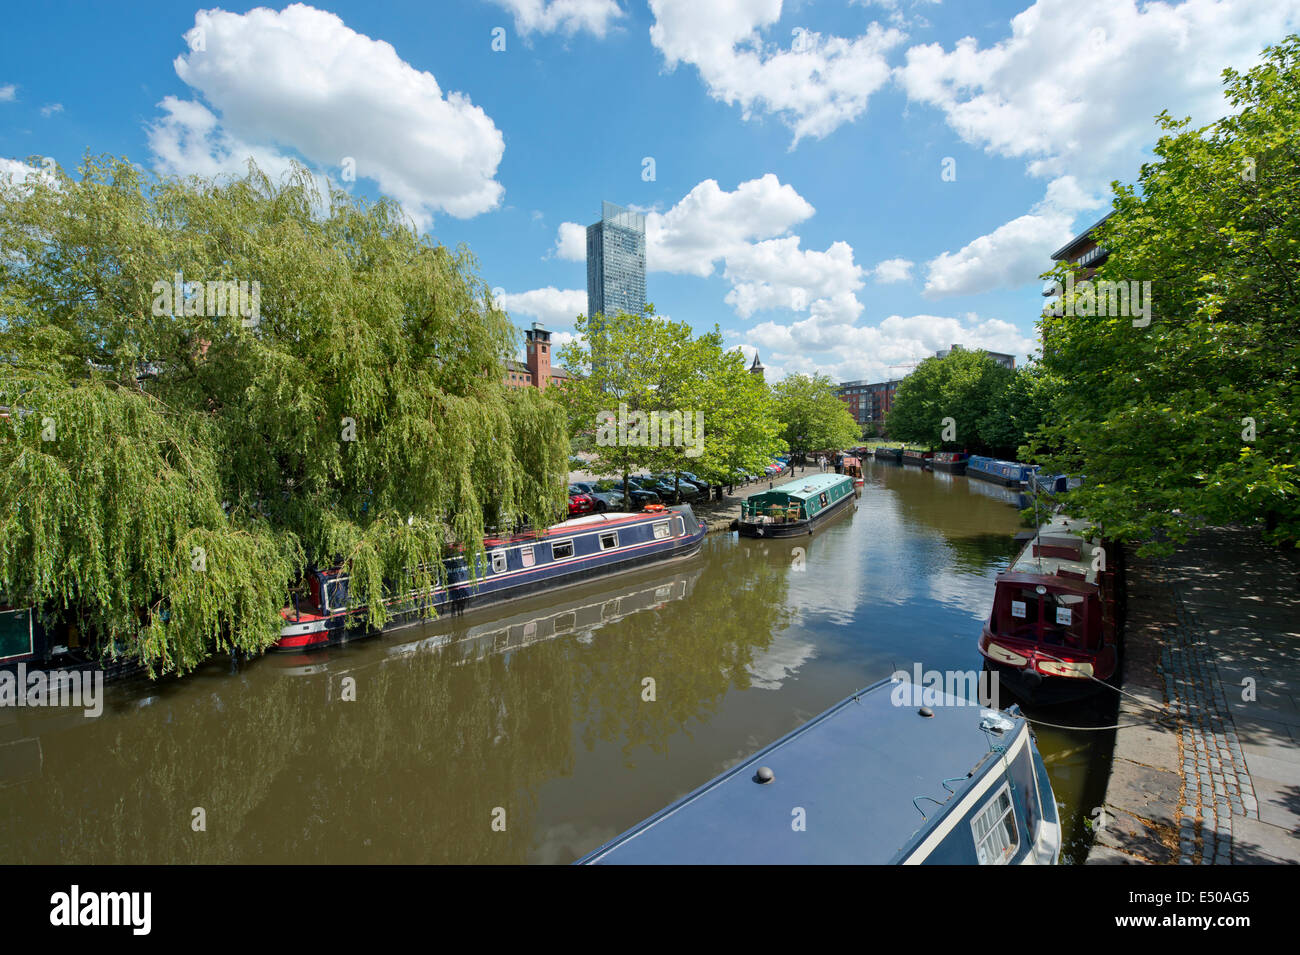 The Castlefield Urban Heritage Park and historic inner city canal conservation area including Beetham Tower in Manchester, - Stock Image